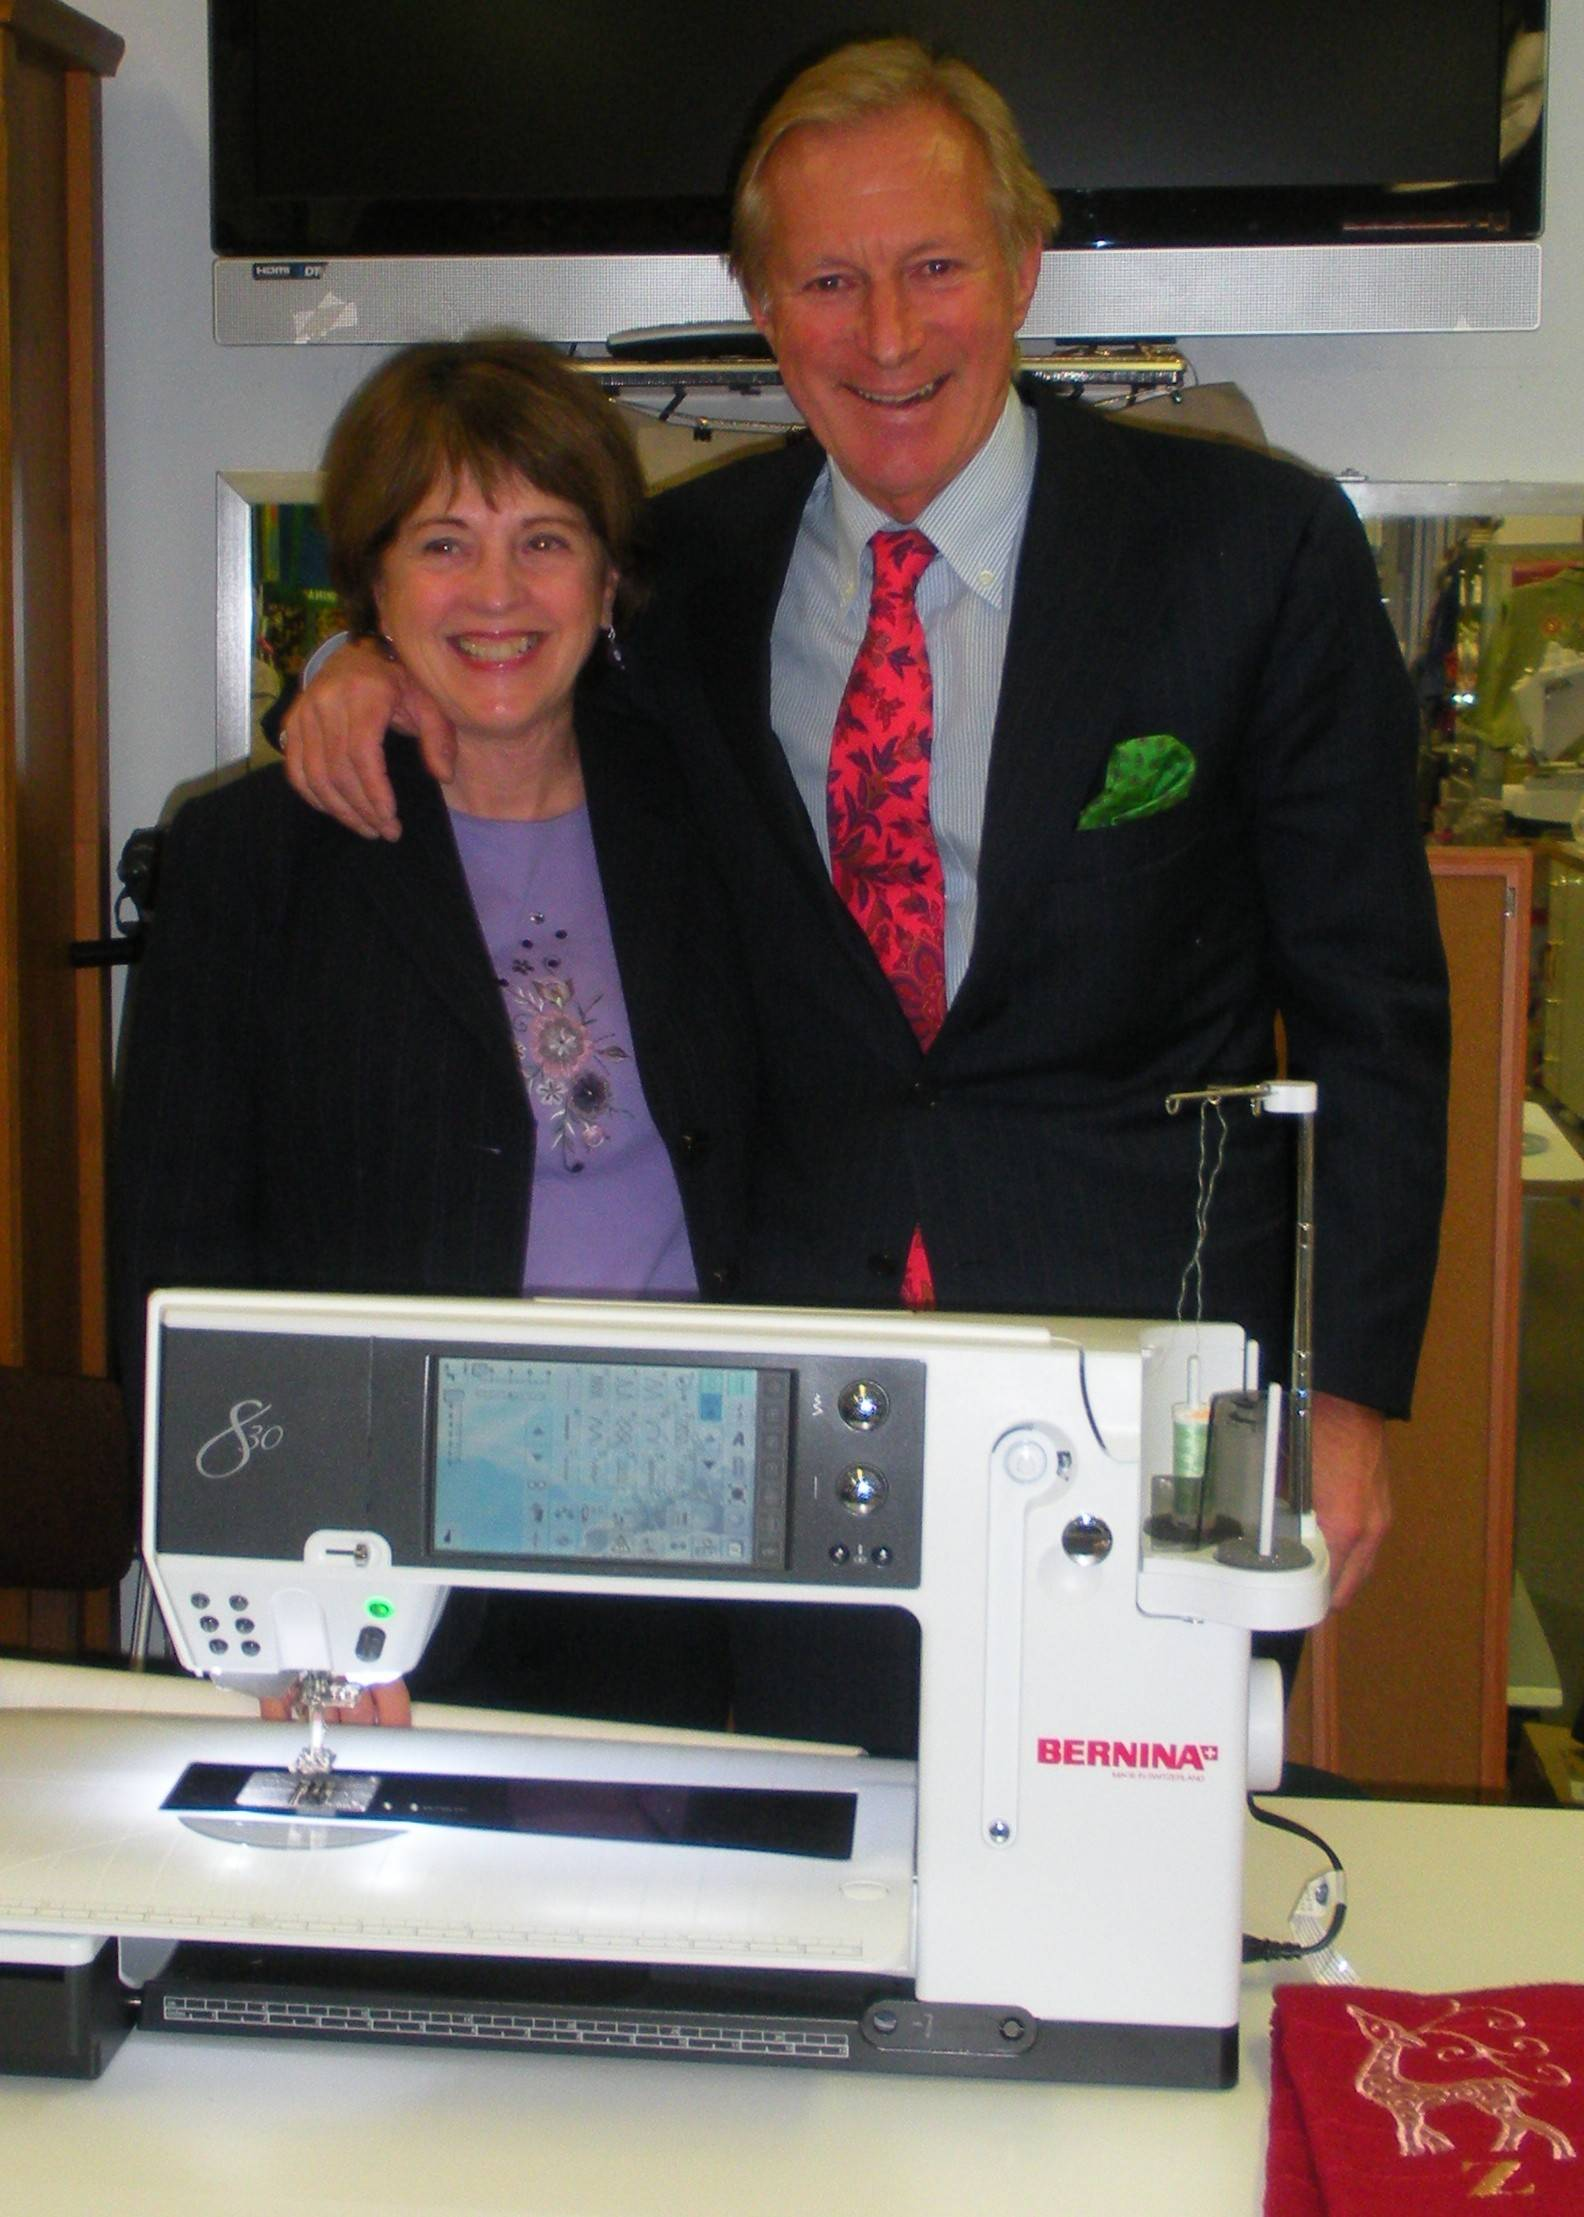 Linda Z's store owner Linda Zachman poses with Hanspeter Ueltschi, fourth generation owner of Bernina International, maker of sewing machines and accessories, in this 2011 file photo.